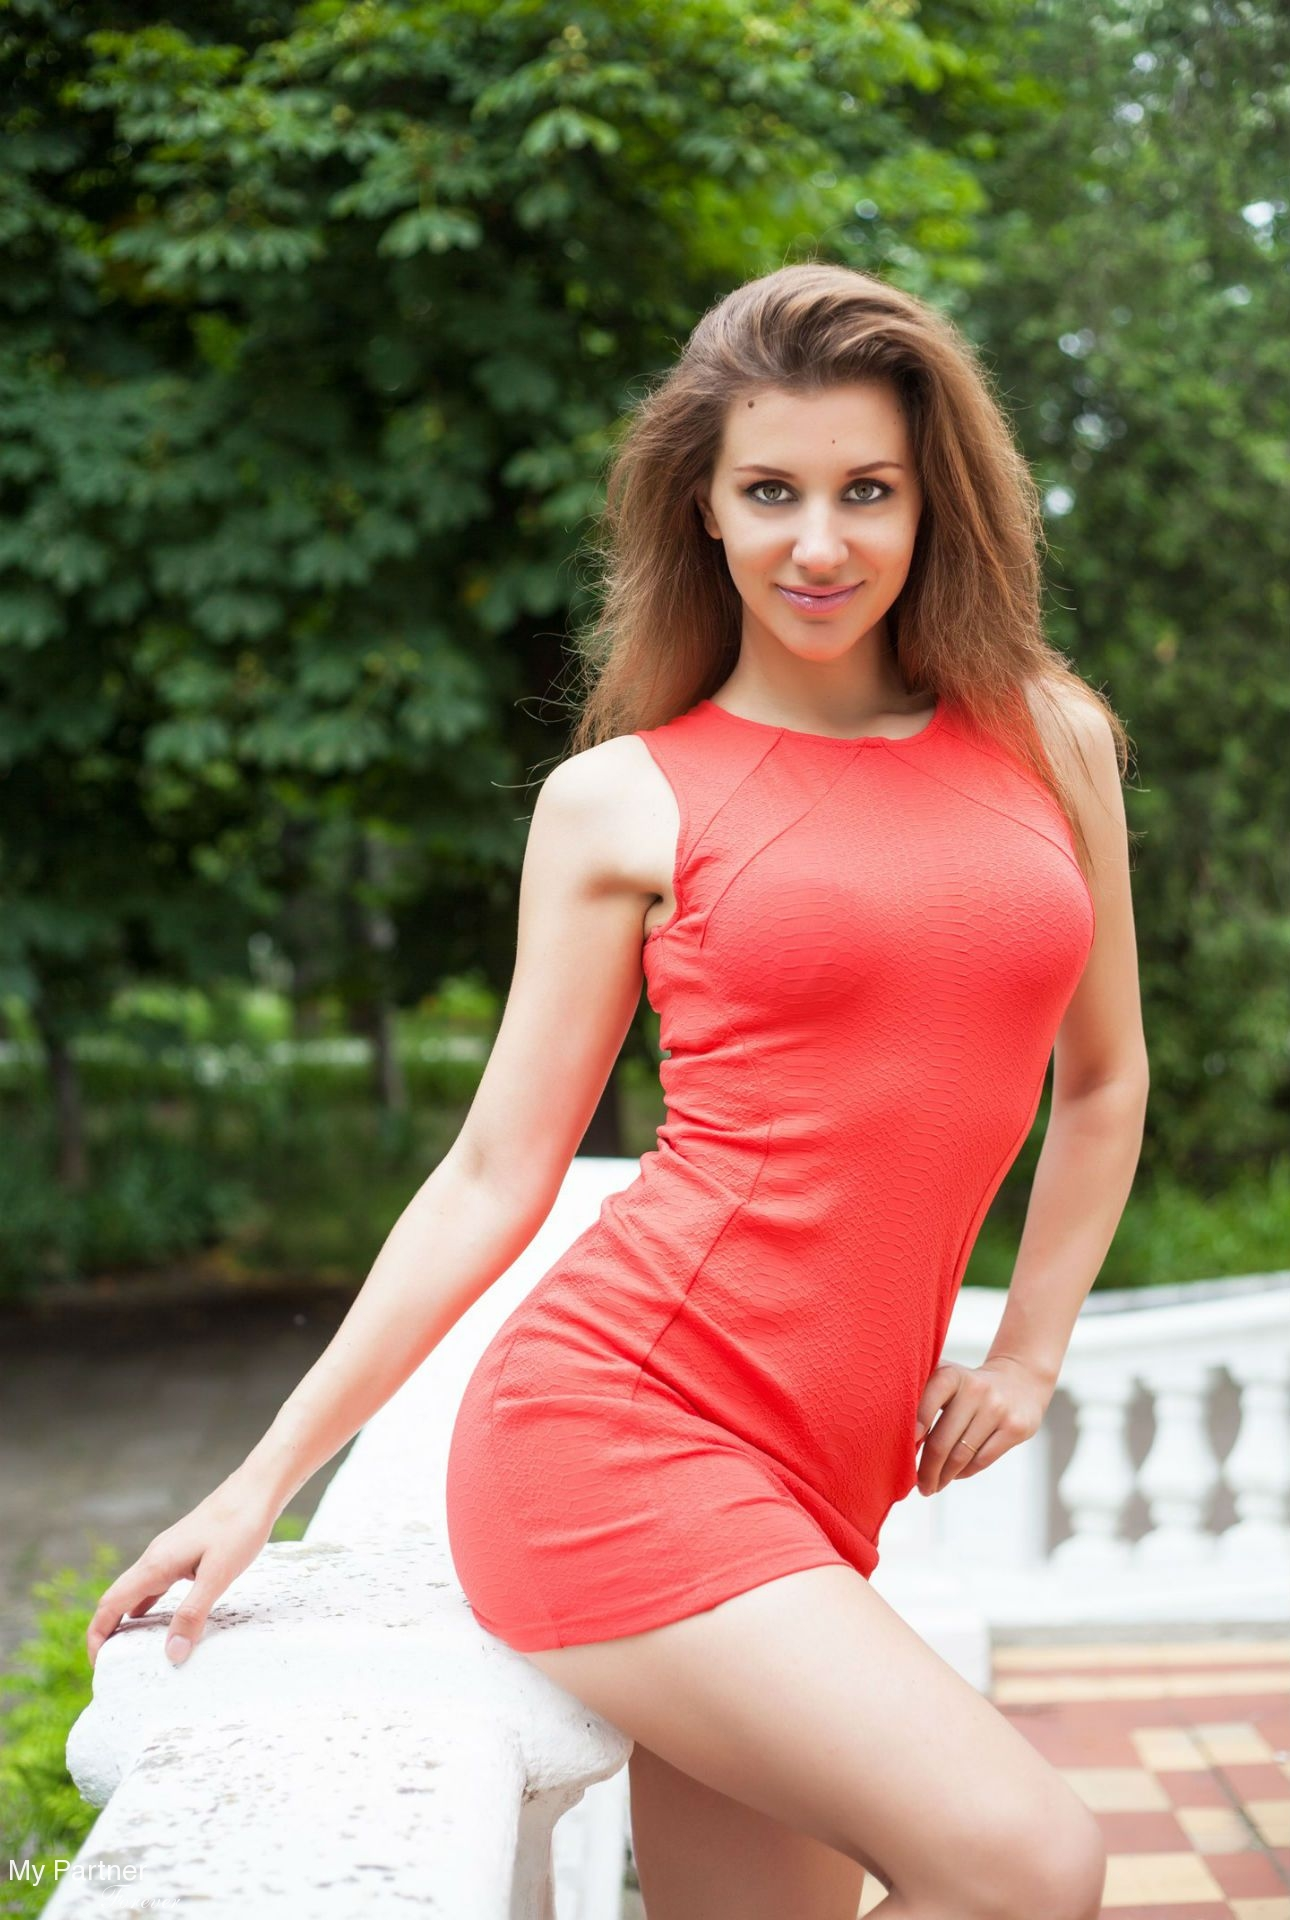 Best ukrainian dating agency